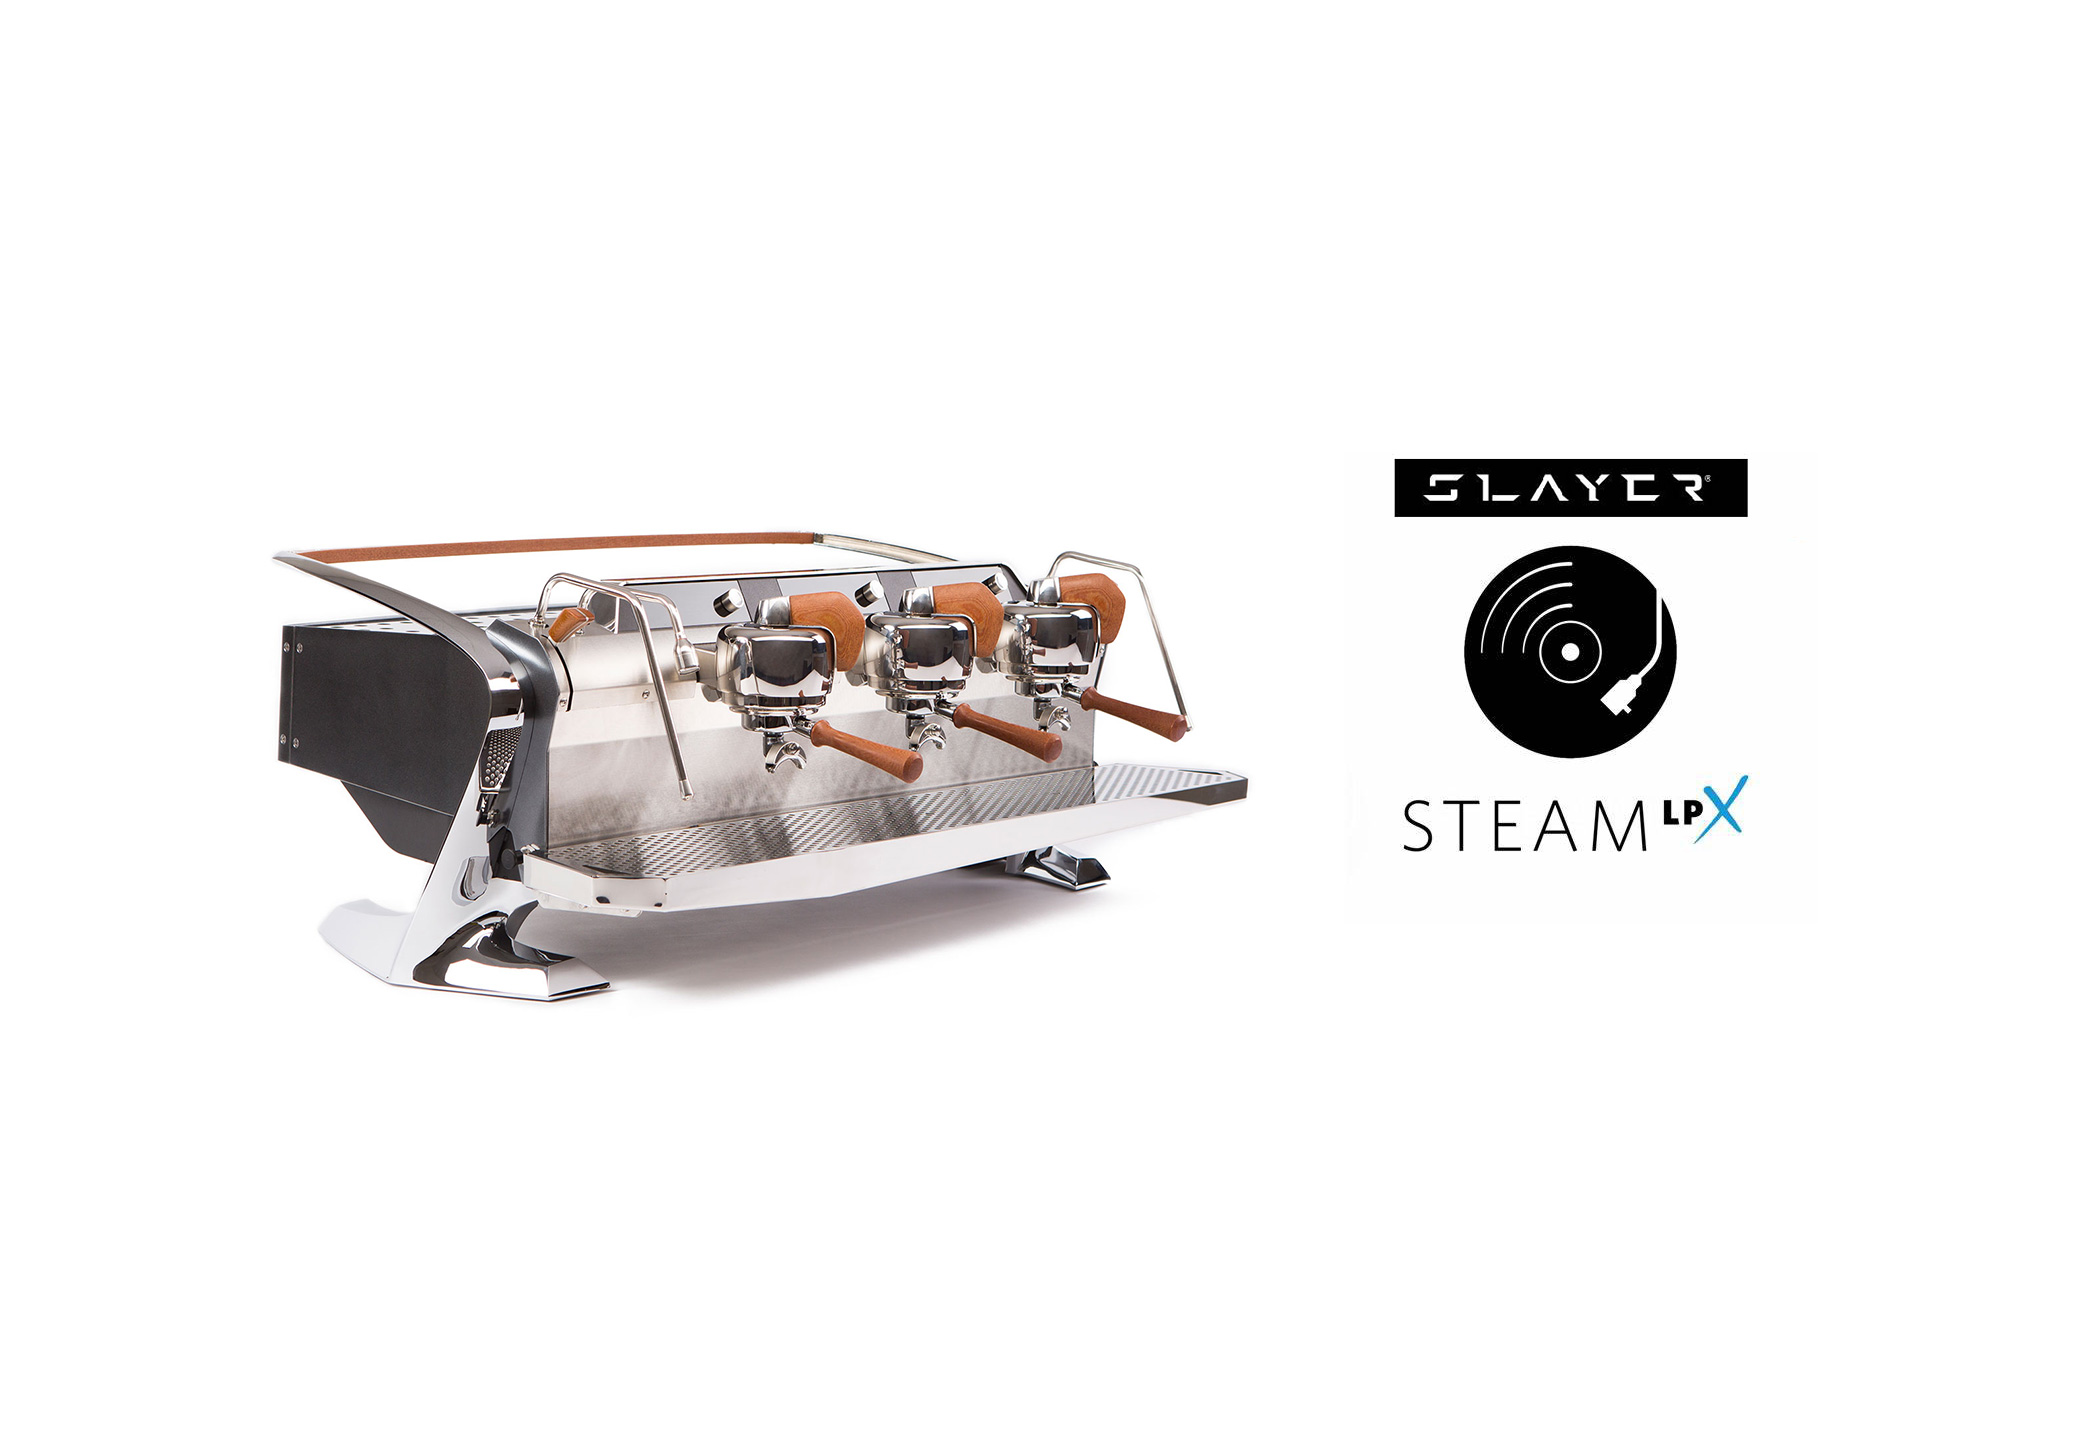 impotralia-slayer-steamlpx-south-africa